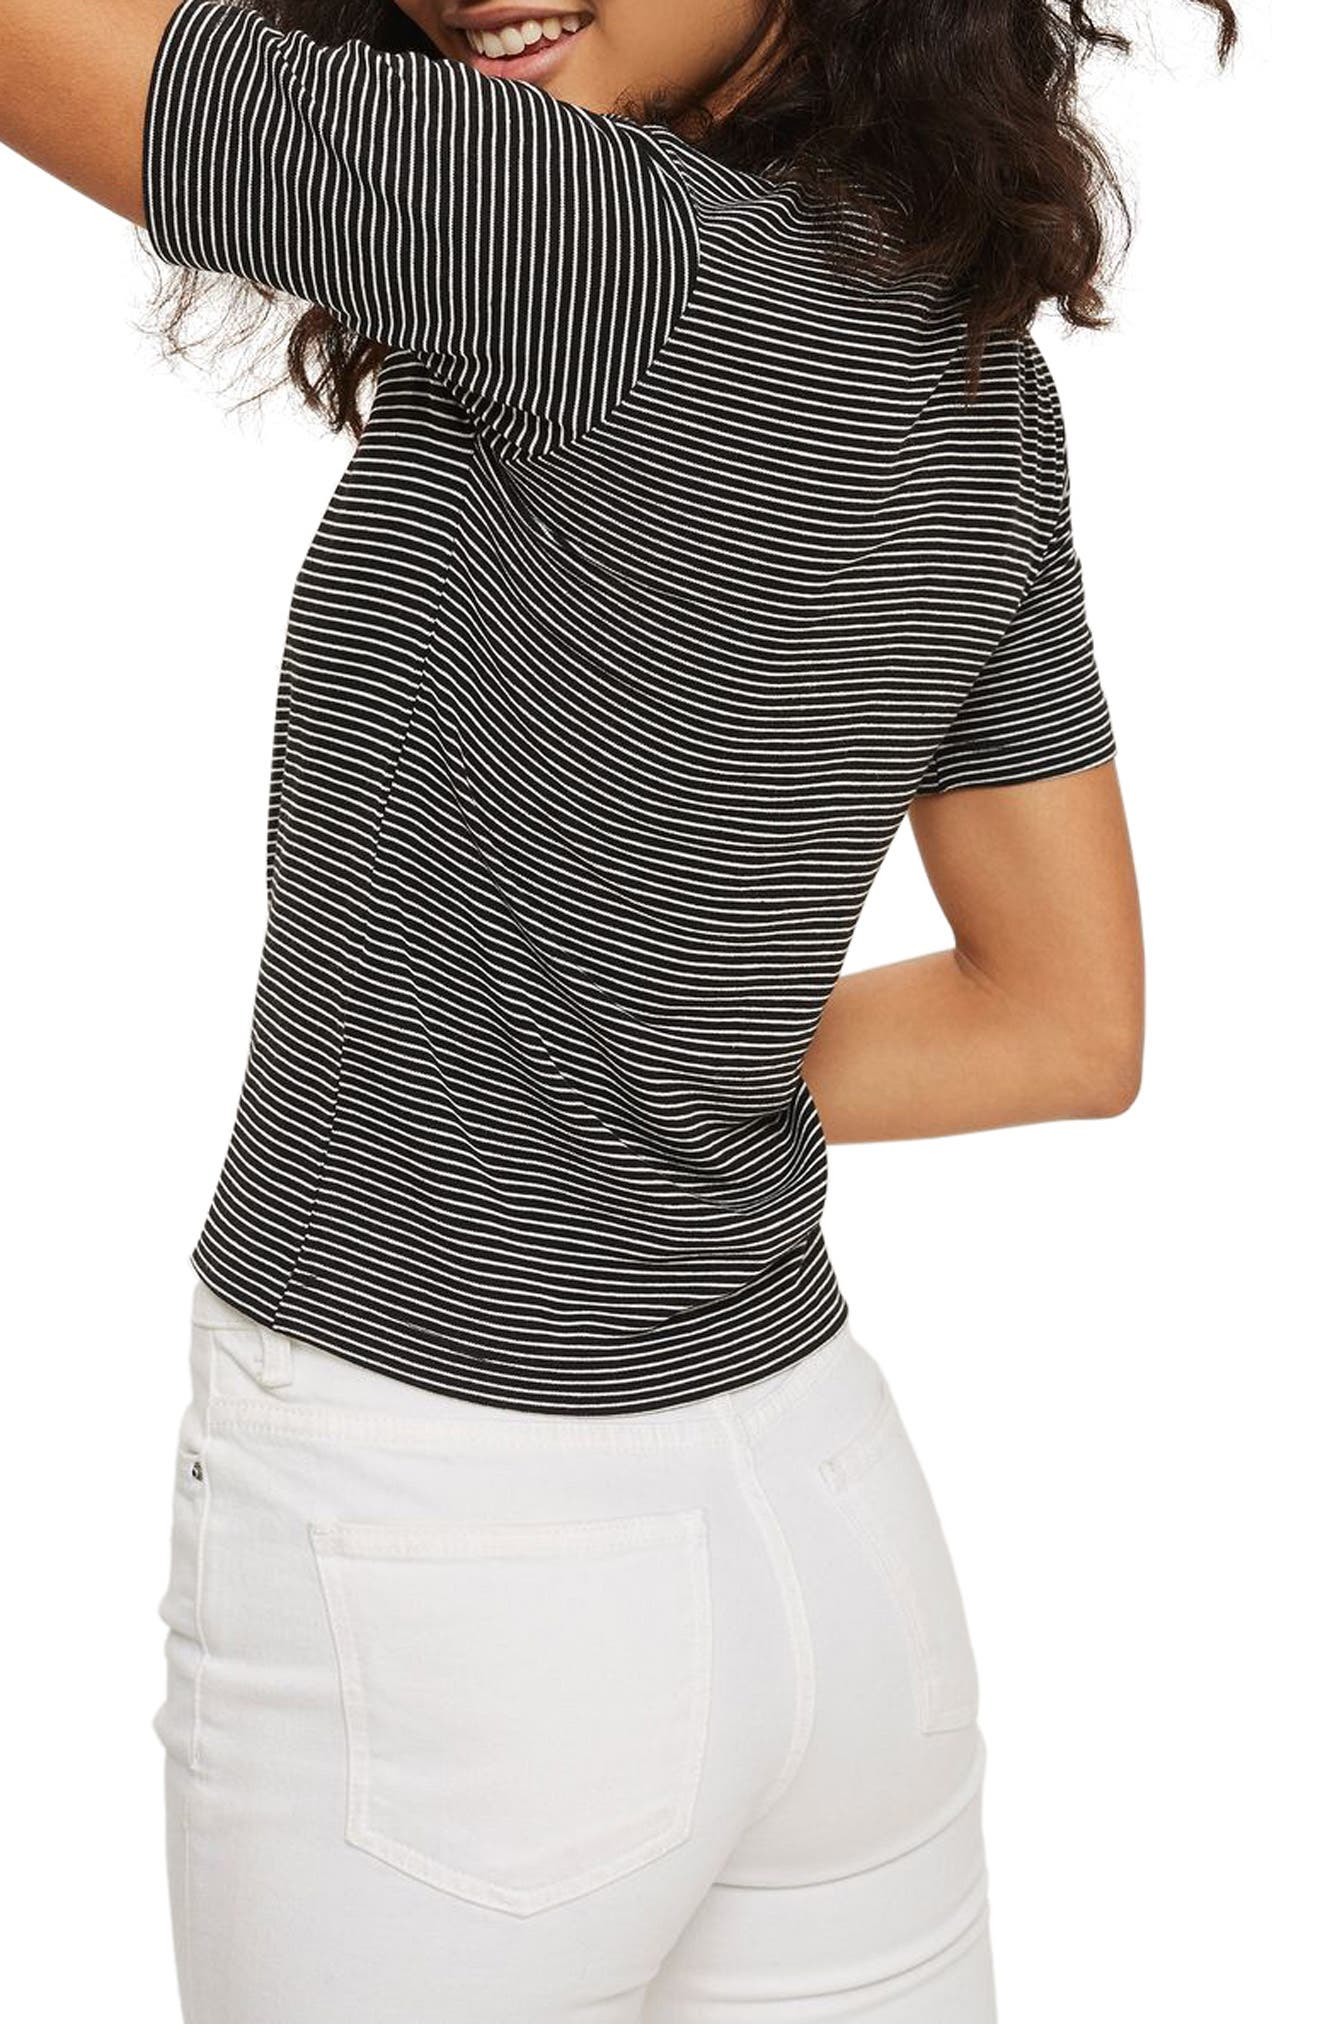 Oui Non Embroidered Tee,                             Alternate thumbnail 2, color,                             001